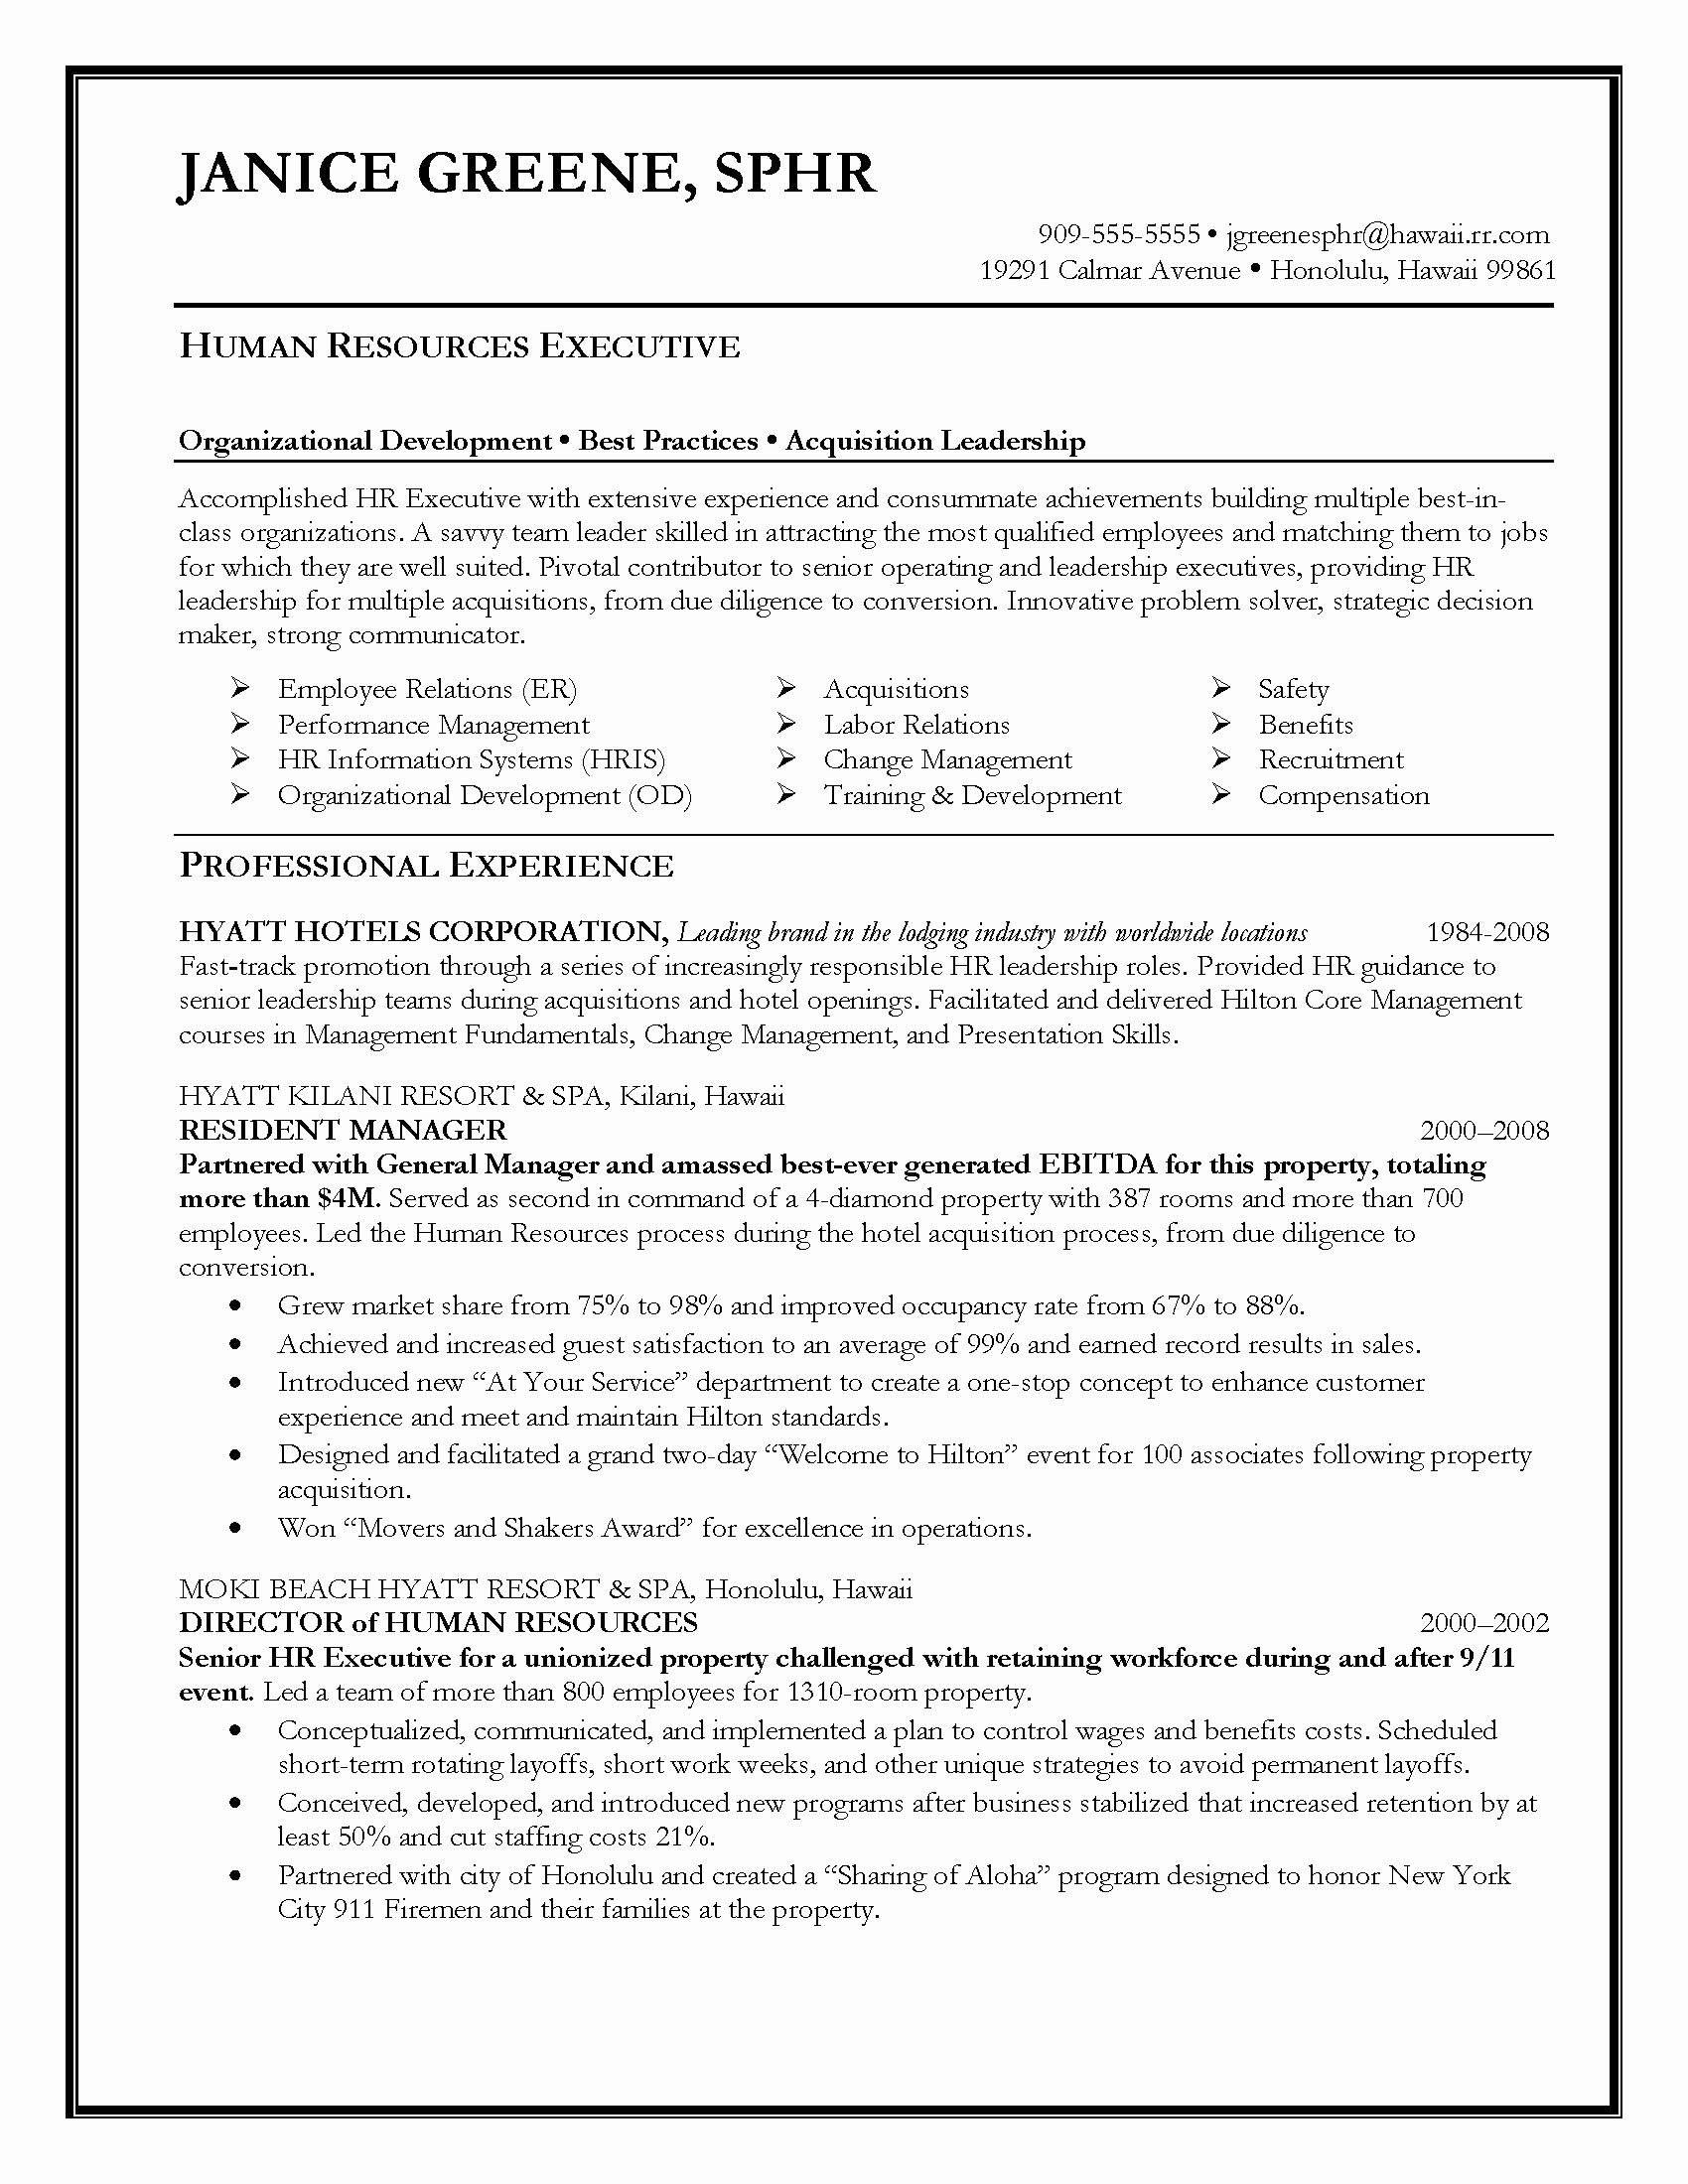 Leadership Qualities for Resume - Leadership Skills Resume New 20 Leadership Skills Examples for